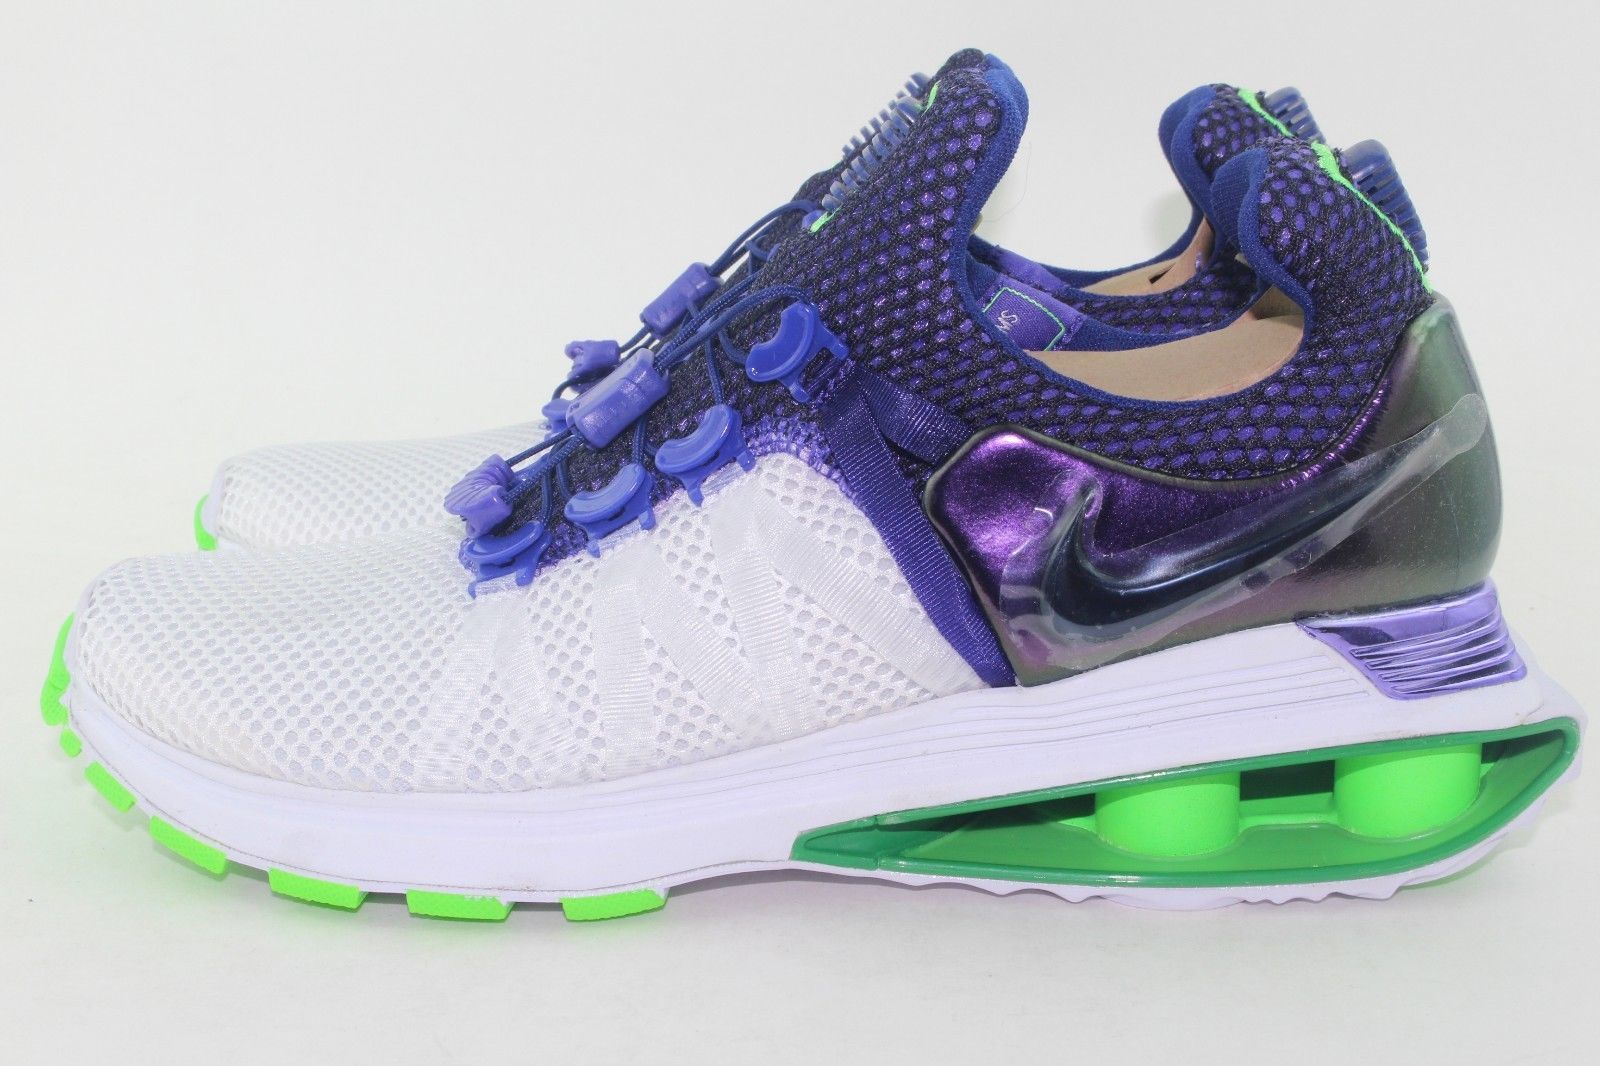 new product 84923 f1fc7 Nike Shox Gravity Violet Women Size 6.5 and 23 similar items. S l1600